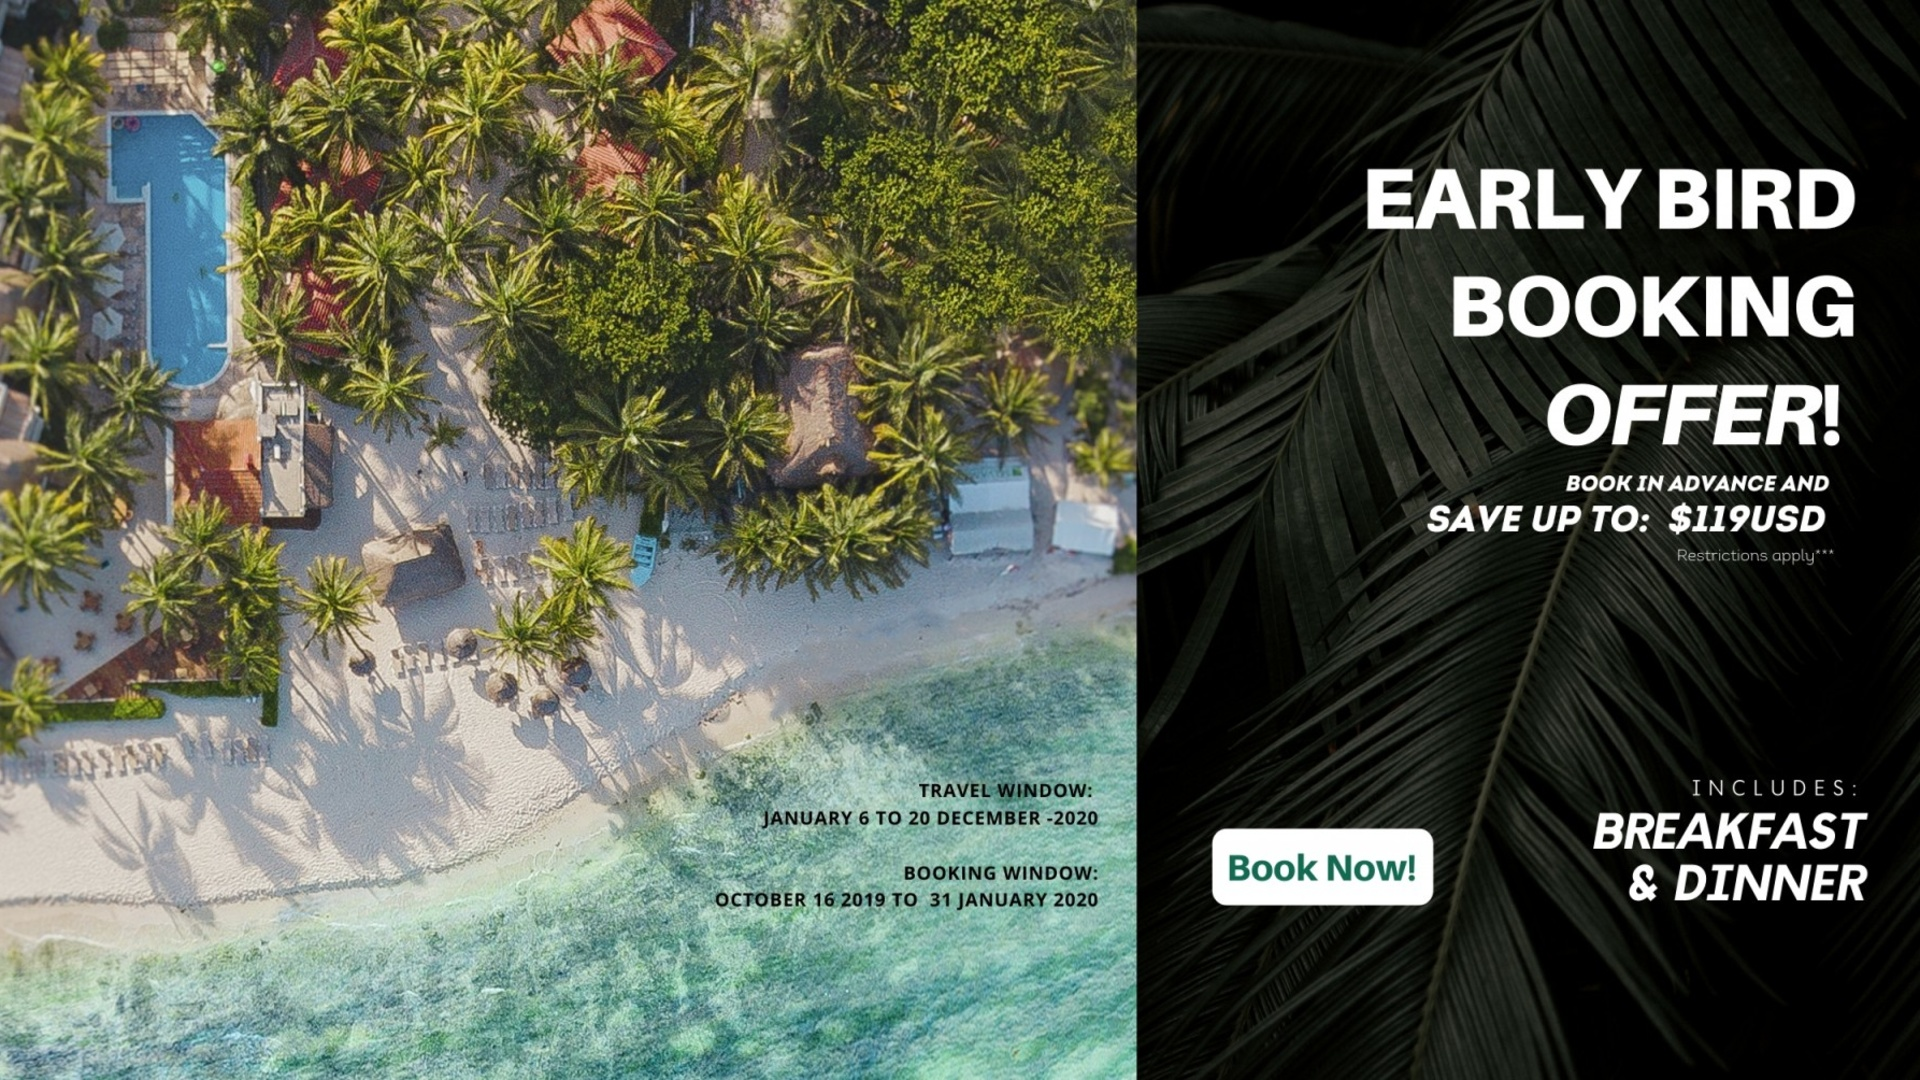 Early Bird booking, Get $100USD OFF